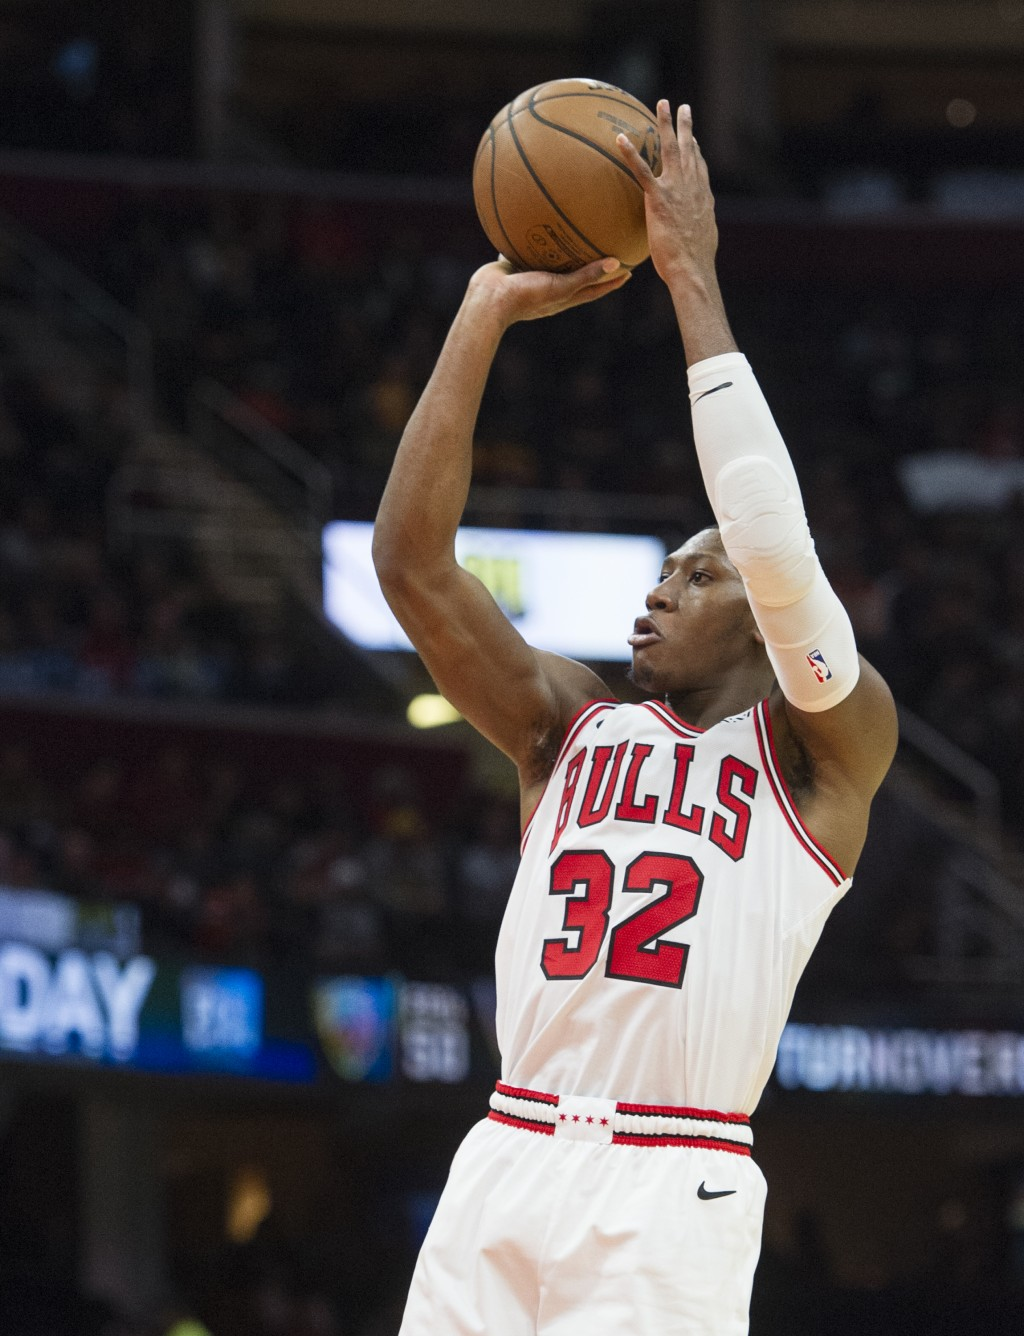 Chicago Bulls' Kris Dunn (32) shoots against the Cleveland Cavaliers during the first half of an NBA basketball game in Cleveland, Sunday, Dec. 23, 20...